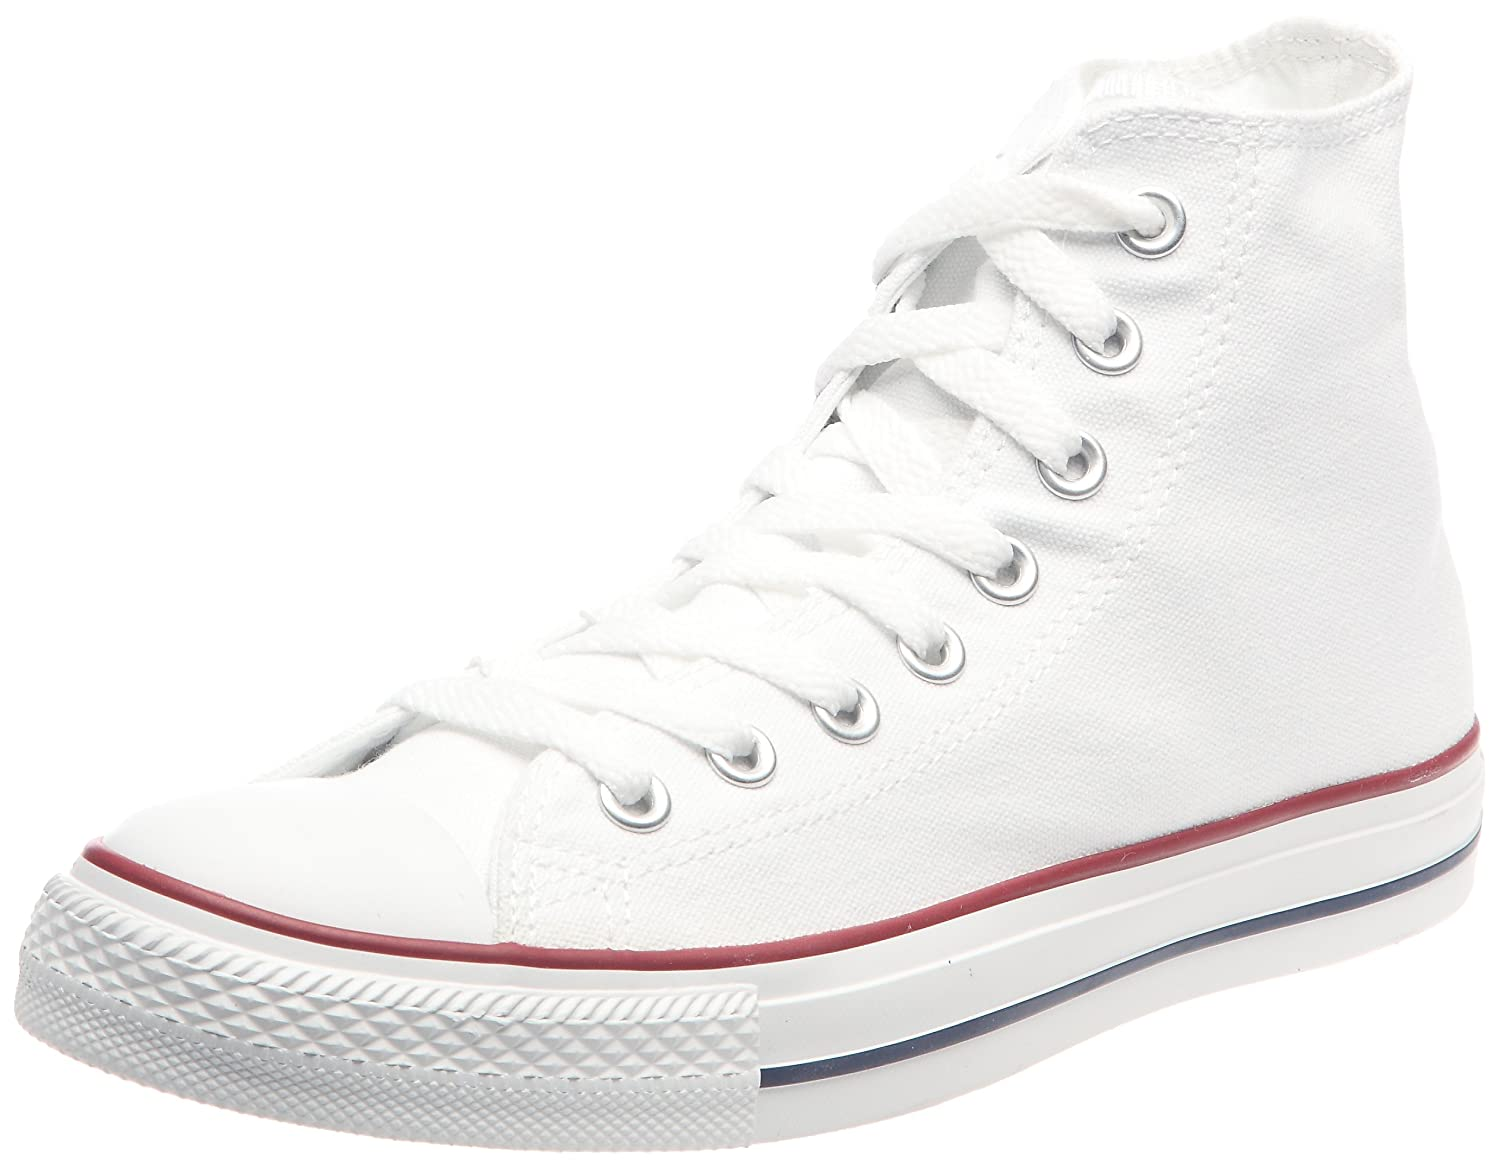 Converse Chuck Taylor All Star Speciality Hi, Zapatillas Altas de Tela Unisex Adulto 42.5 EU|Optical White